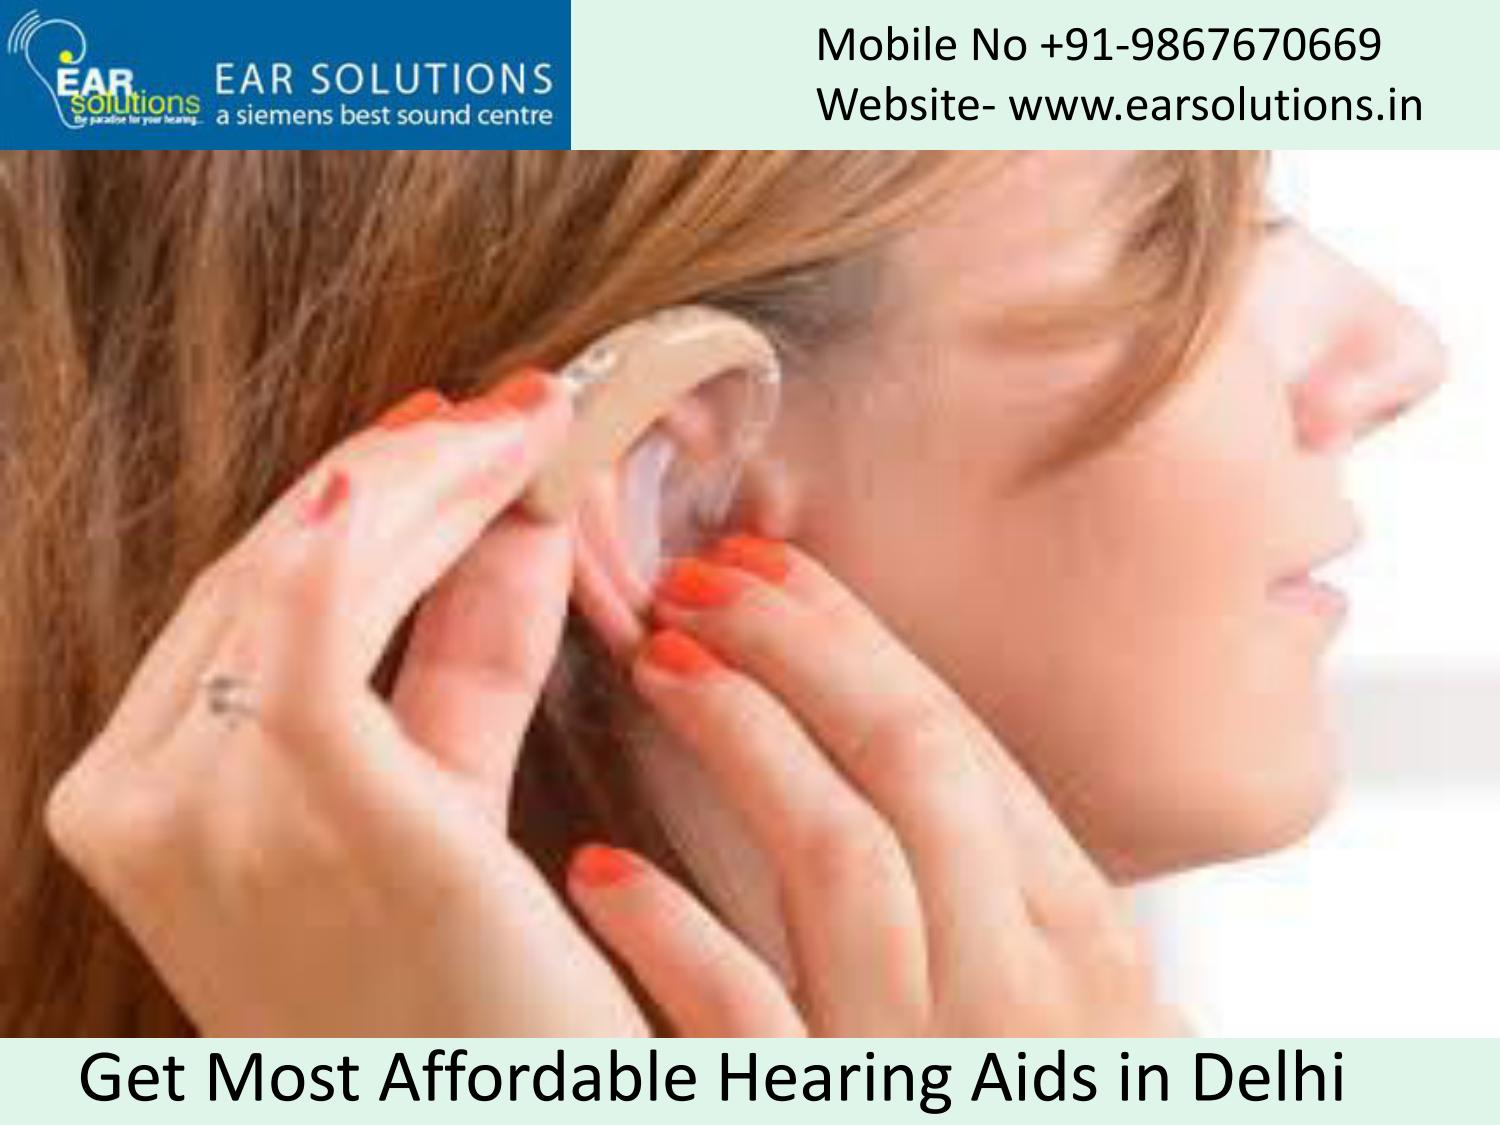 Affordable Hearing Aids >> Get Most Affordable Hearing Aids In Delhi By Anjalisen11 Issuu